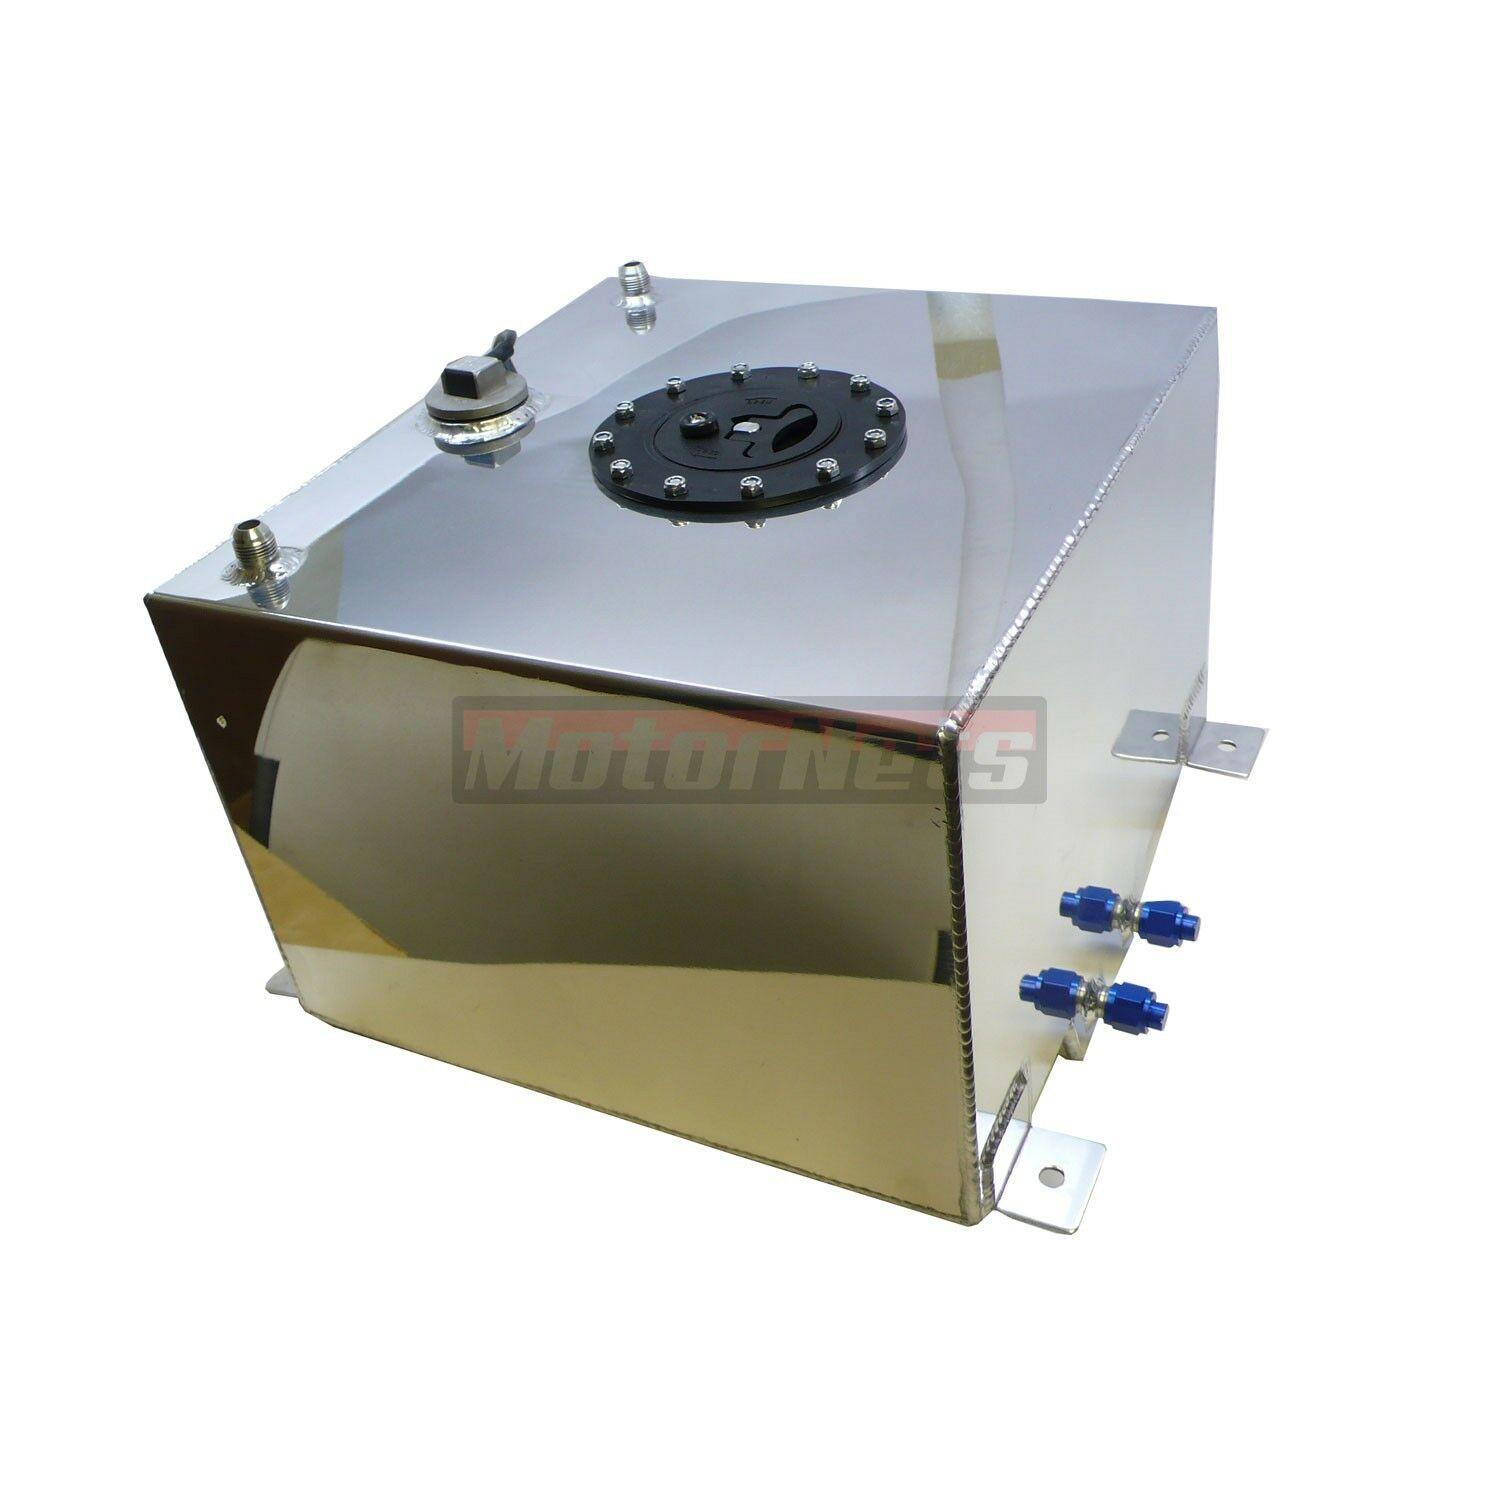 Details about 10 Gallon Fabricated Aluminum Fuel Cell Gas Tank With 0-90  Ohm Sending Unit SBC